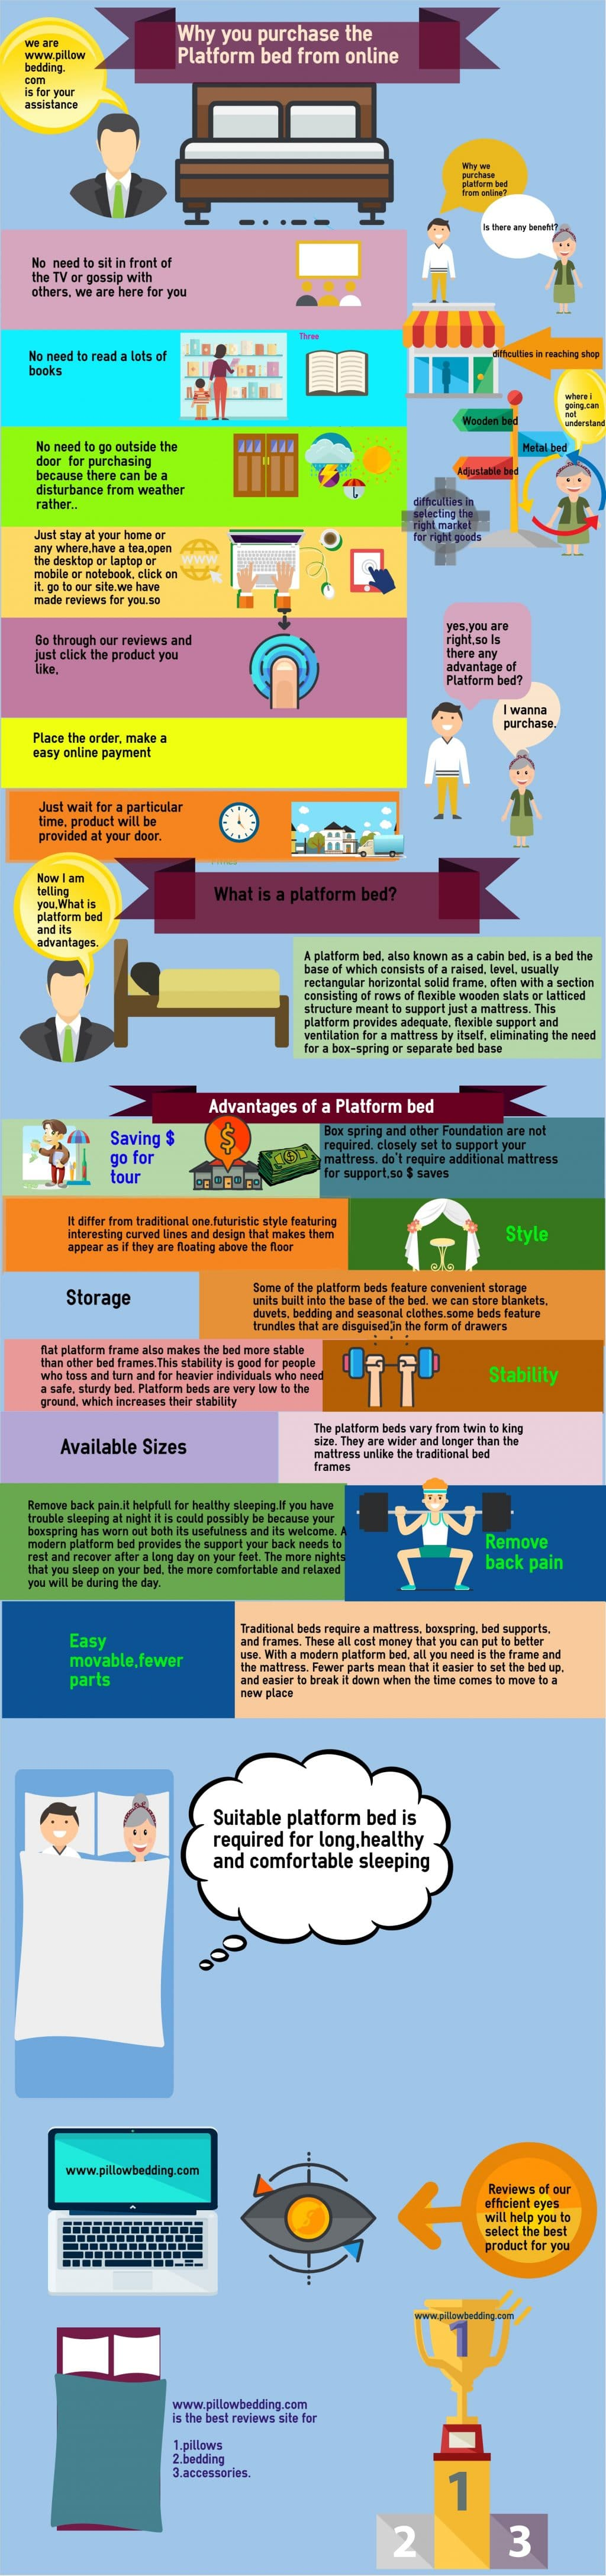 benefits of platform bed